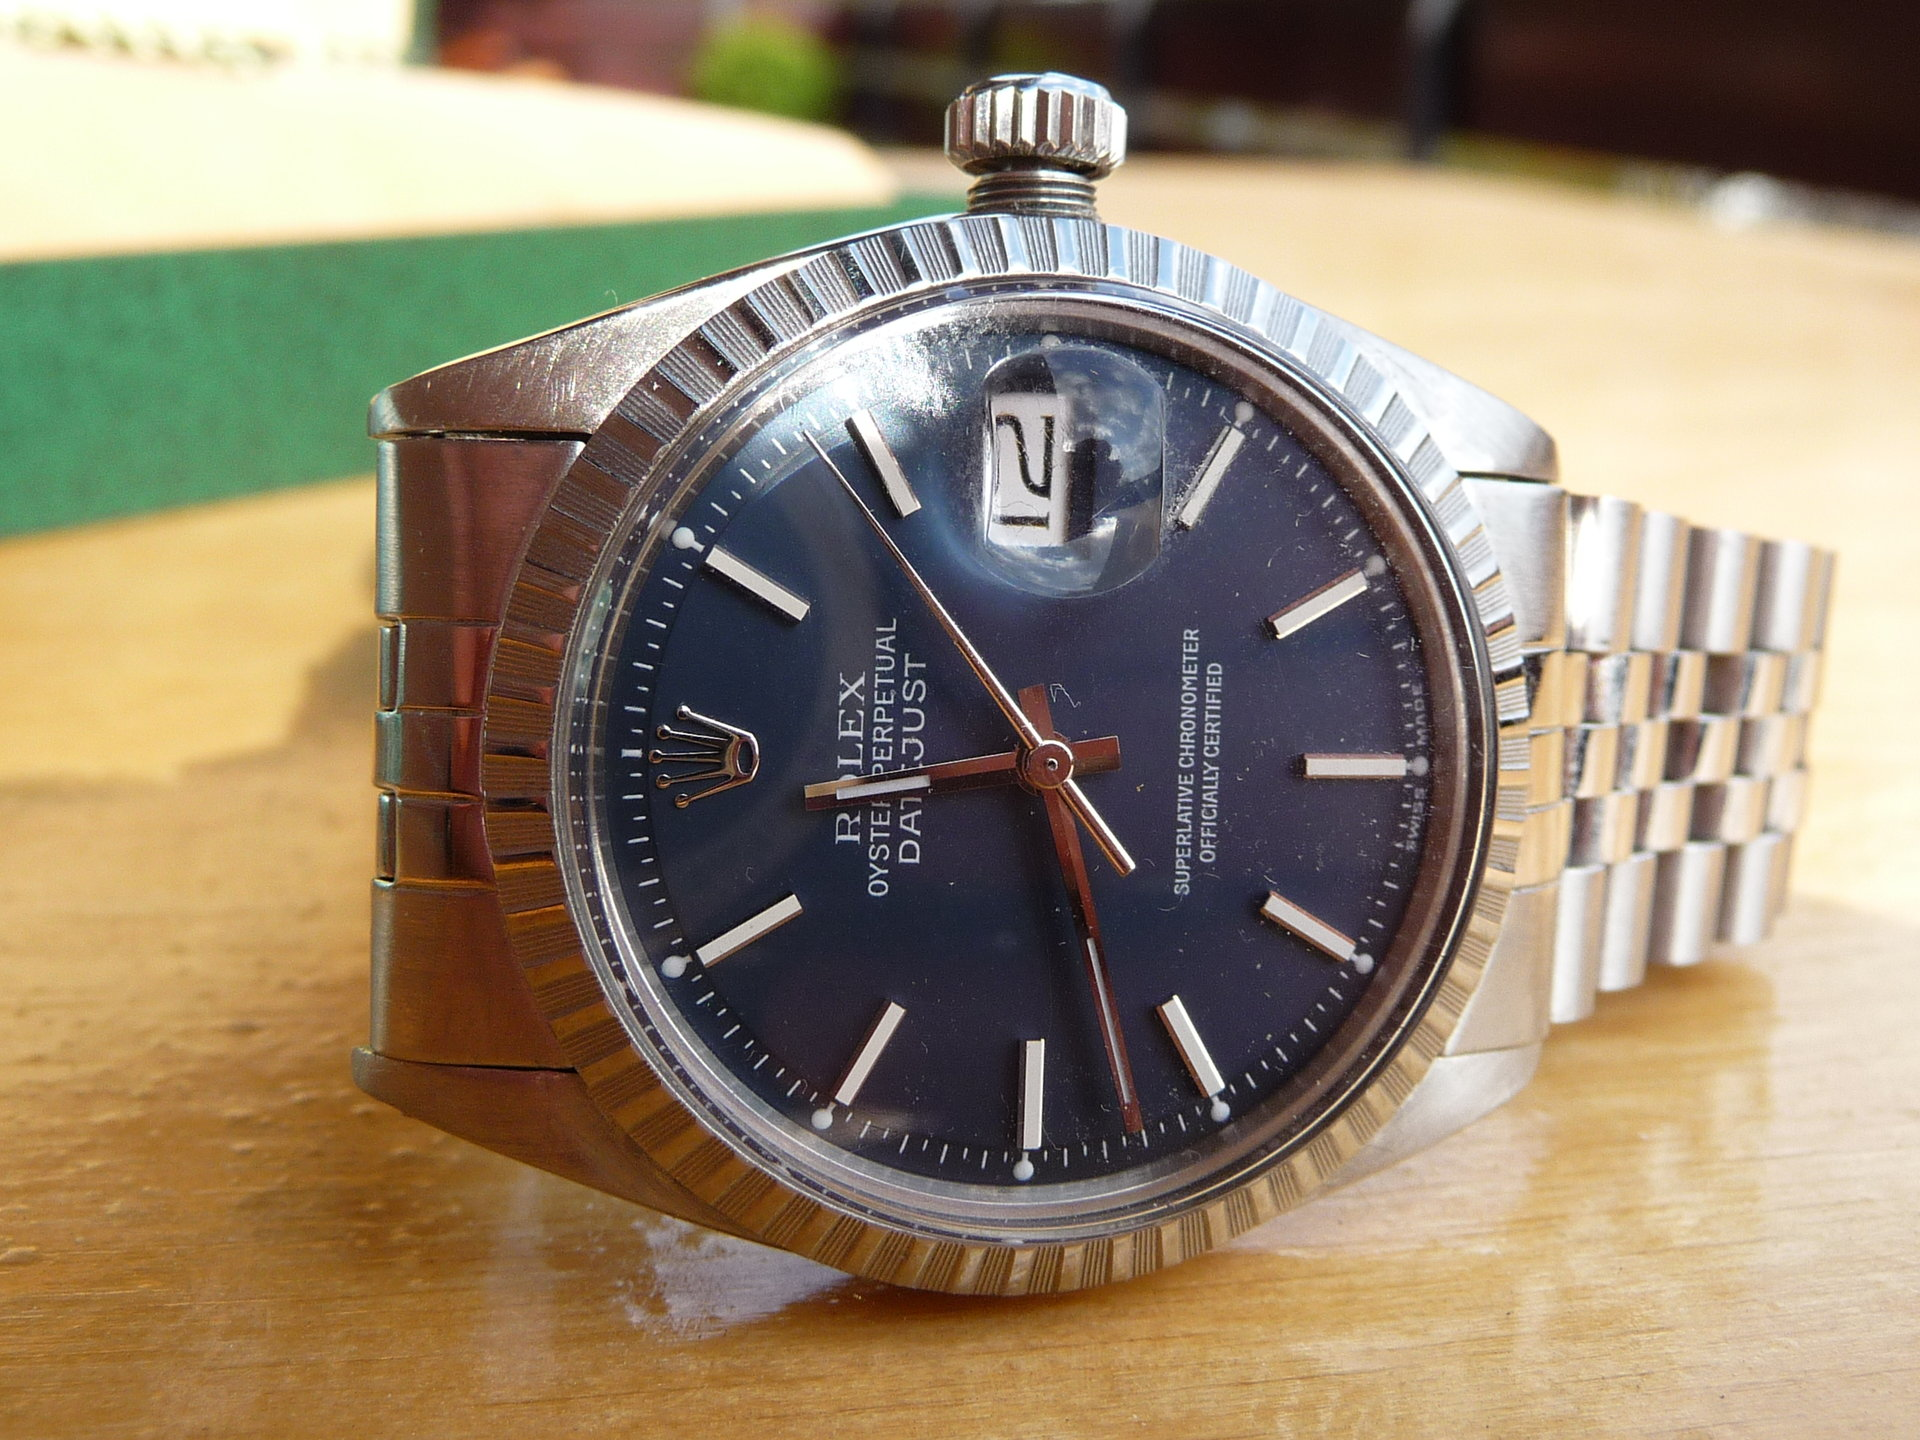 reserviert rolex datejust 1603 aus 1971 blaues blatt uhrforum. Black Bedroom Furniture Sets. Home Design Ideas